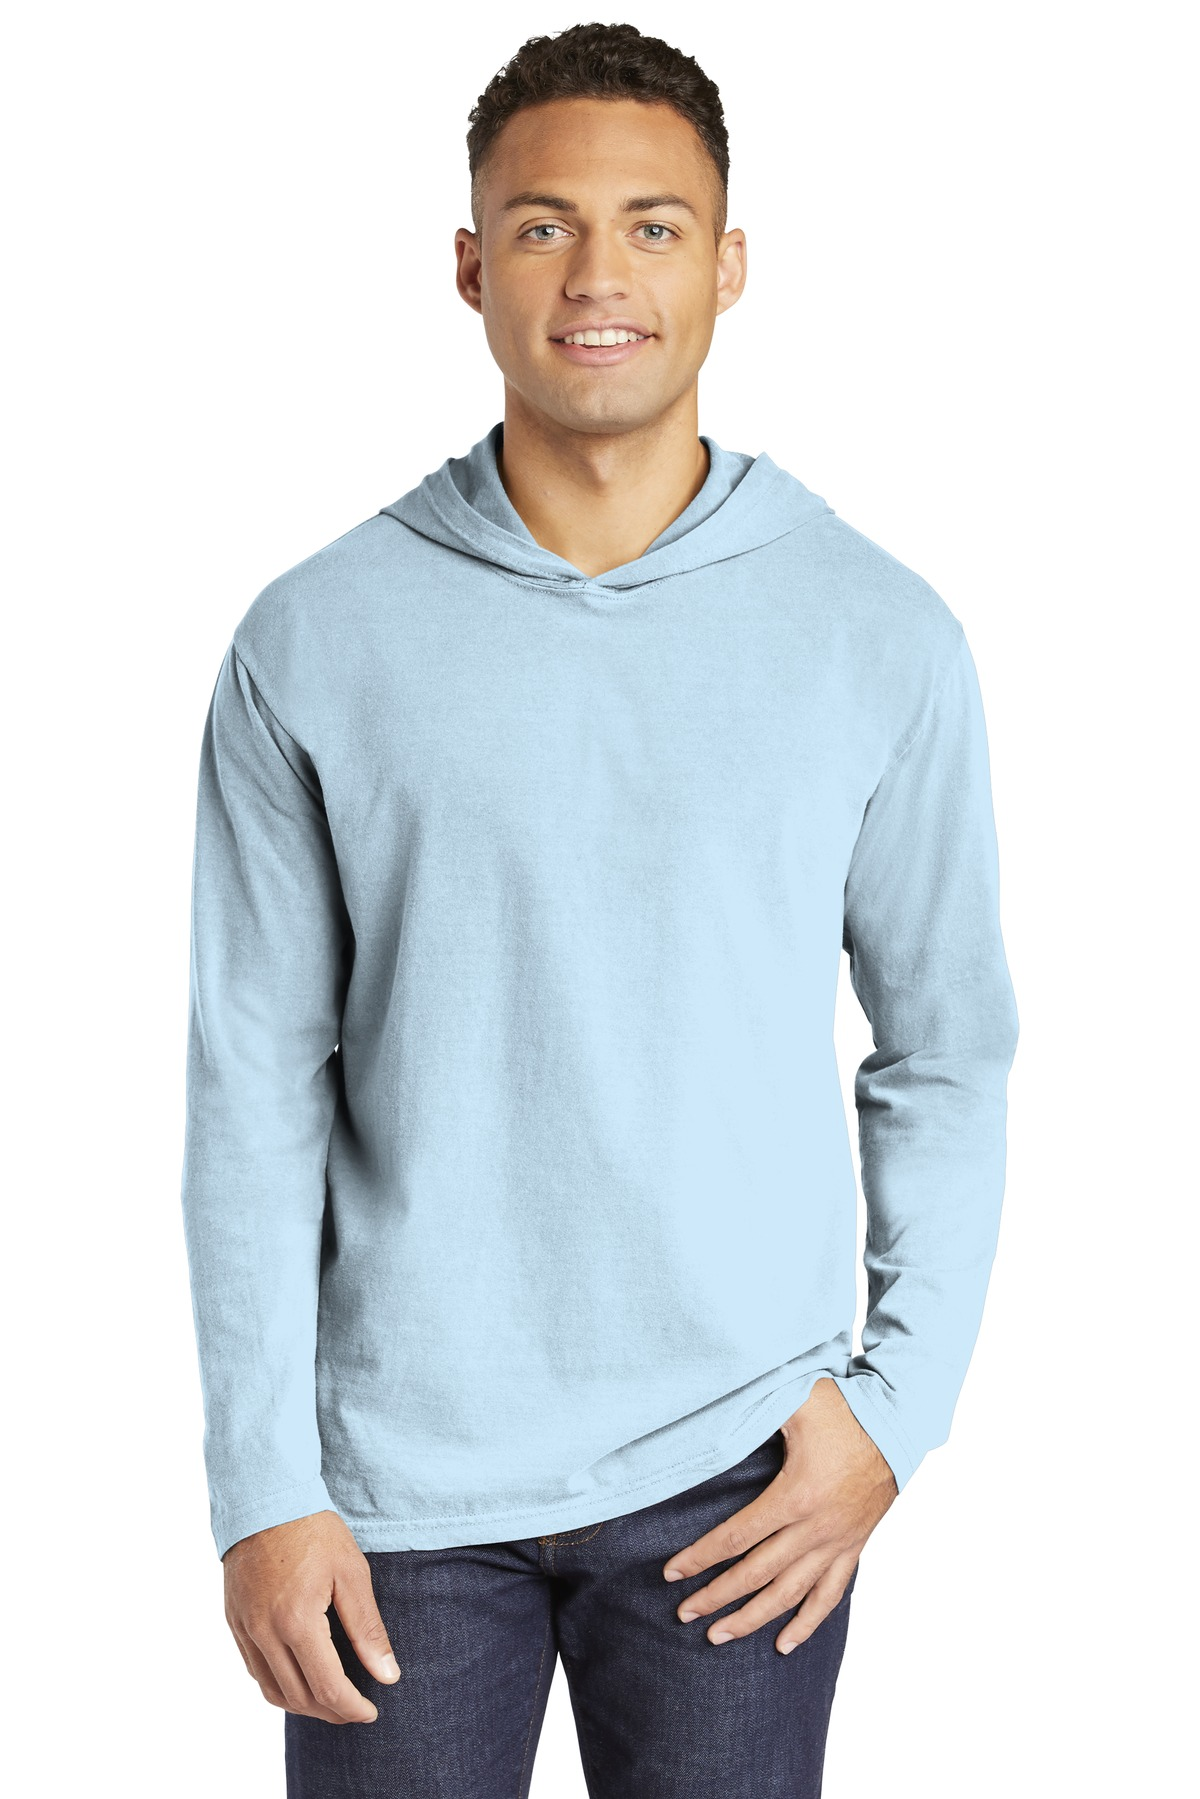 COMFORT COLORS  ®  Heavyweight Ring Spun Long Sleeve Hooded Tee. 4900 - Chambray